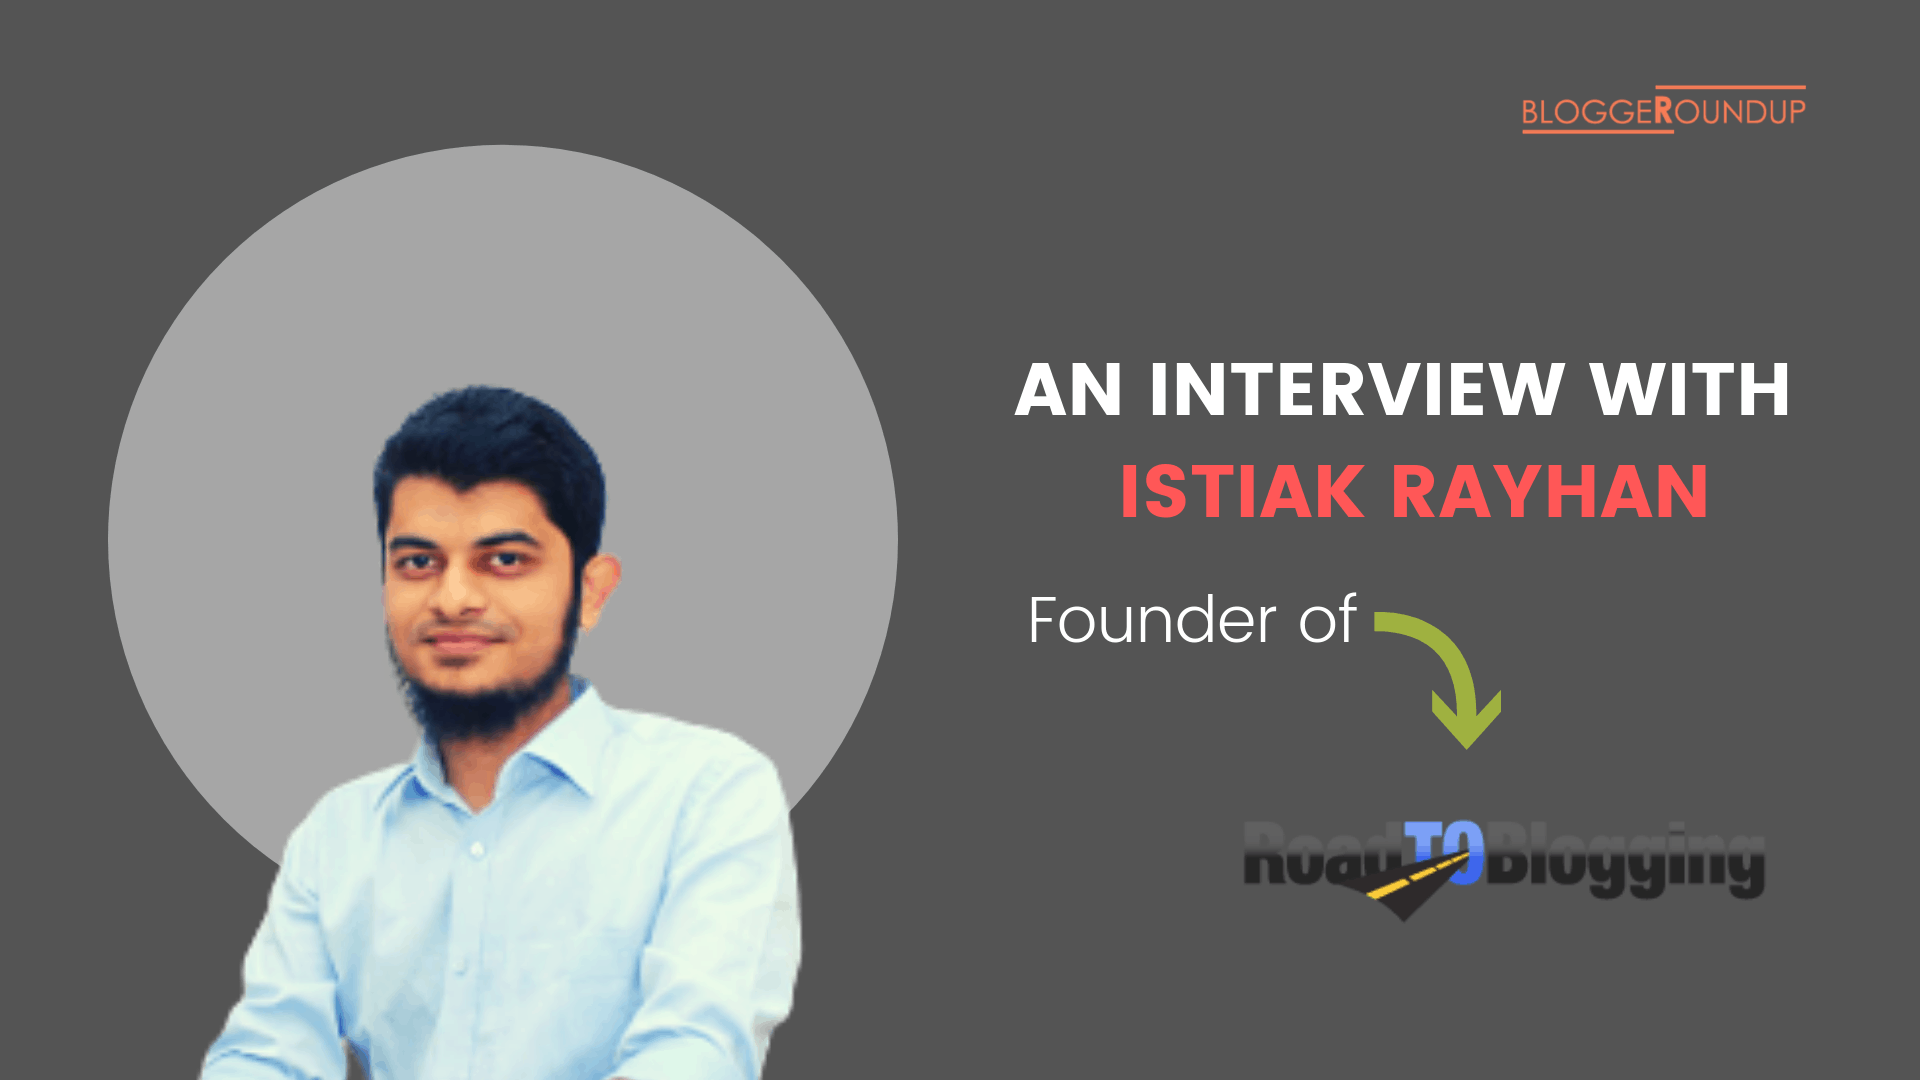 An Interview with Istiak Rayhan